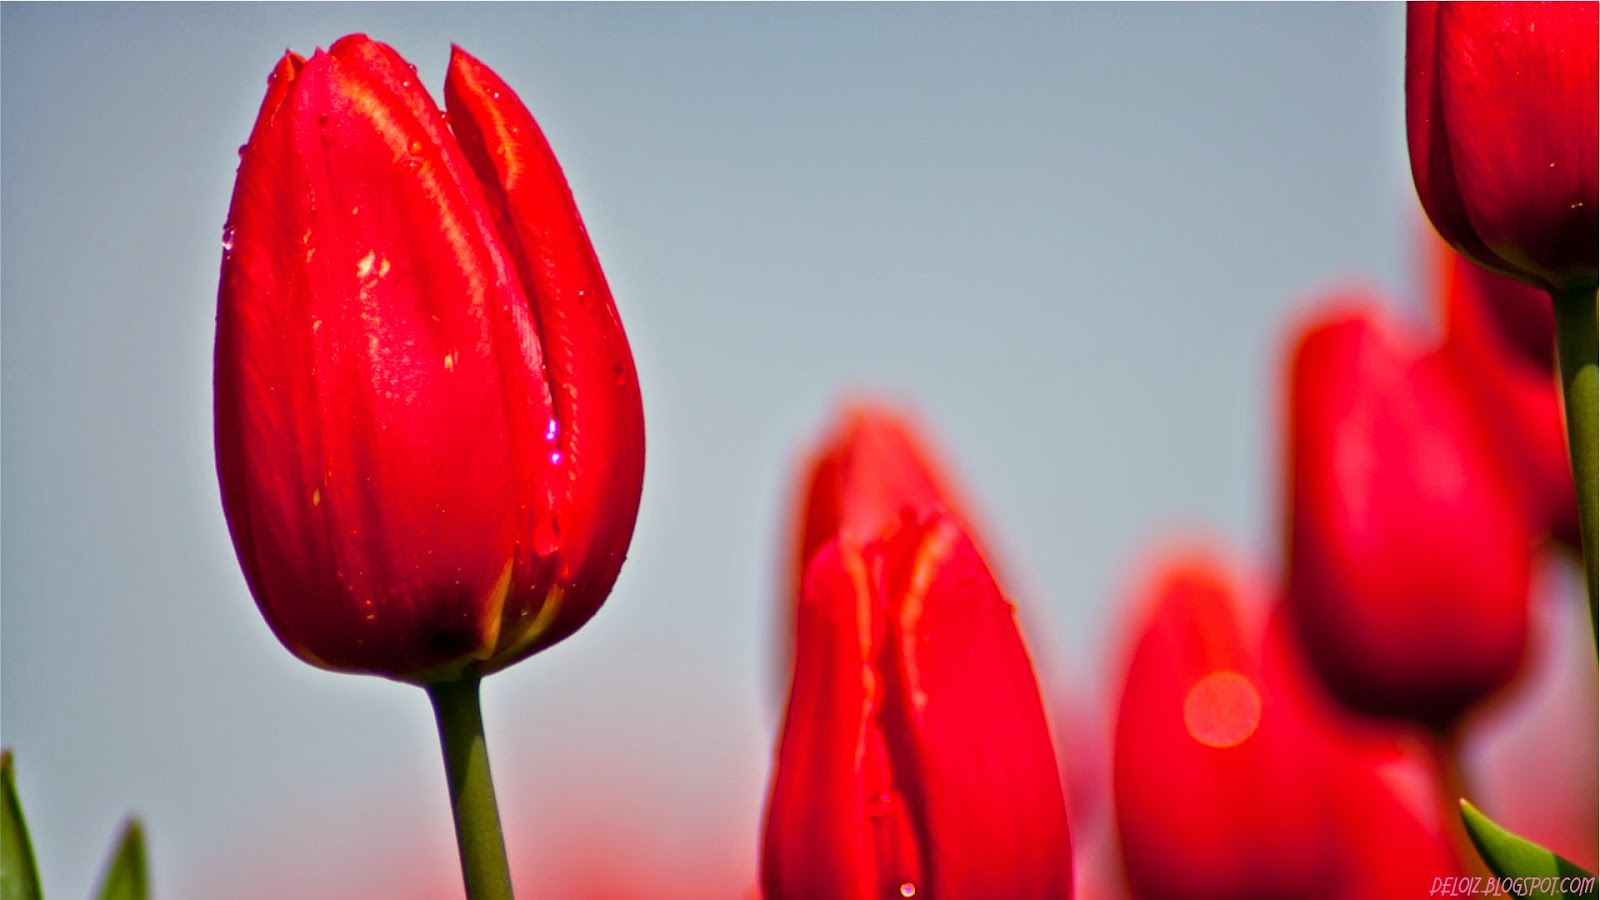 Wallpaper Bunga Tulip Merah